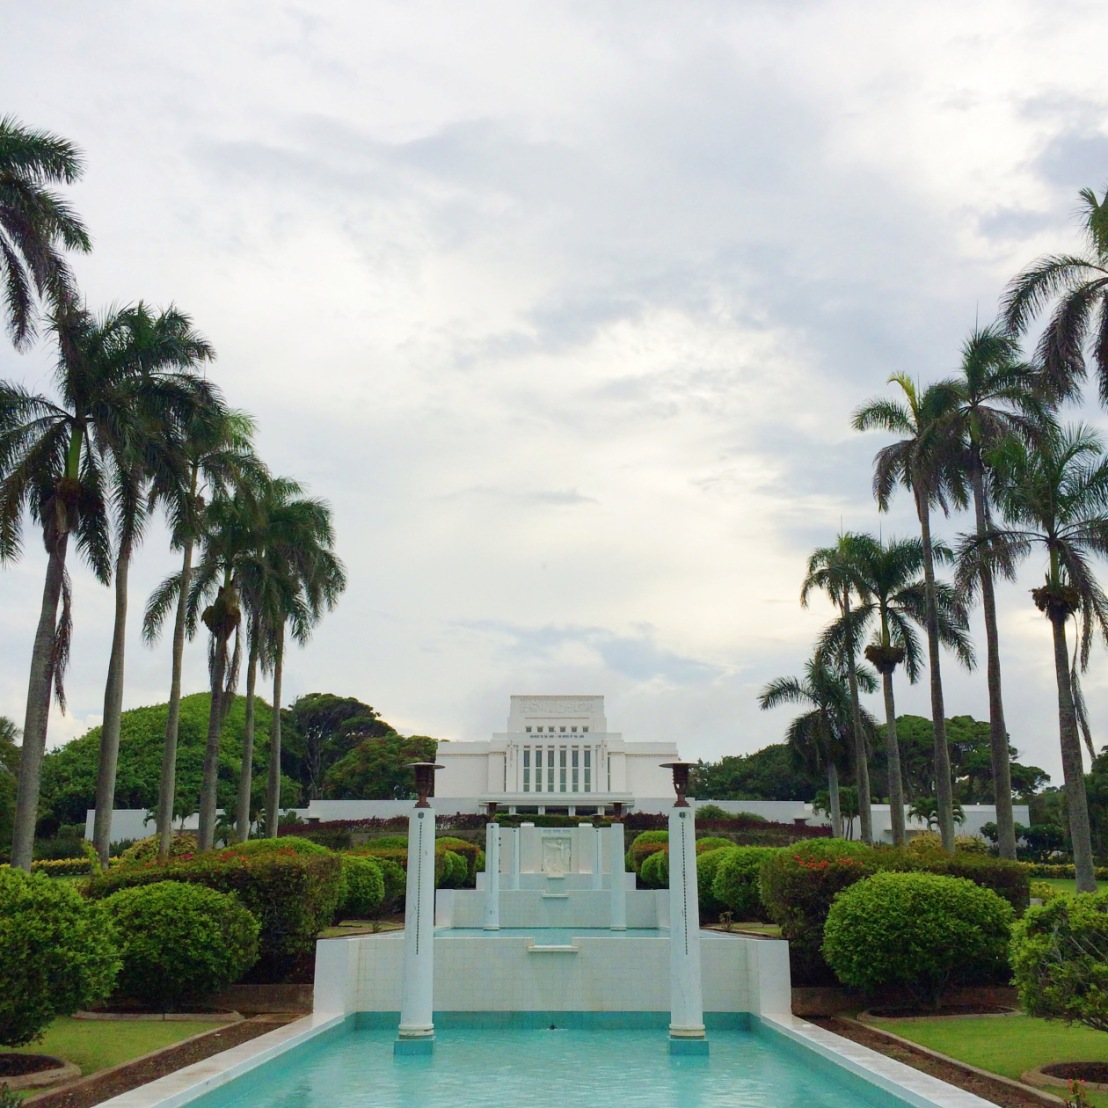 LAIE HAWAII LDS TEMPLE // VIDEO